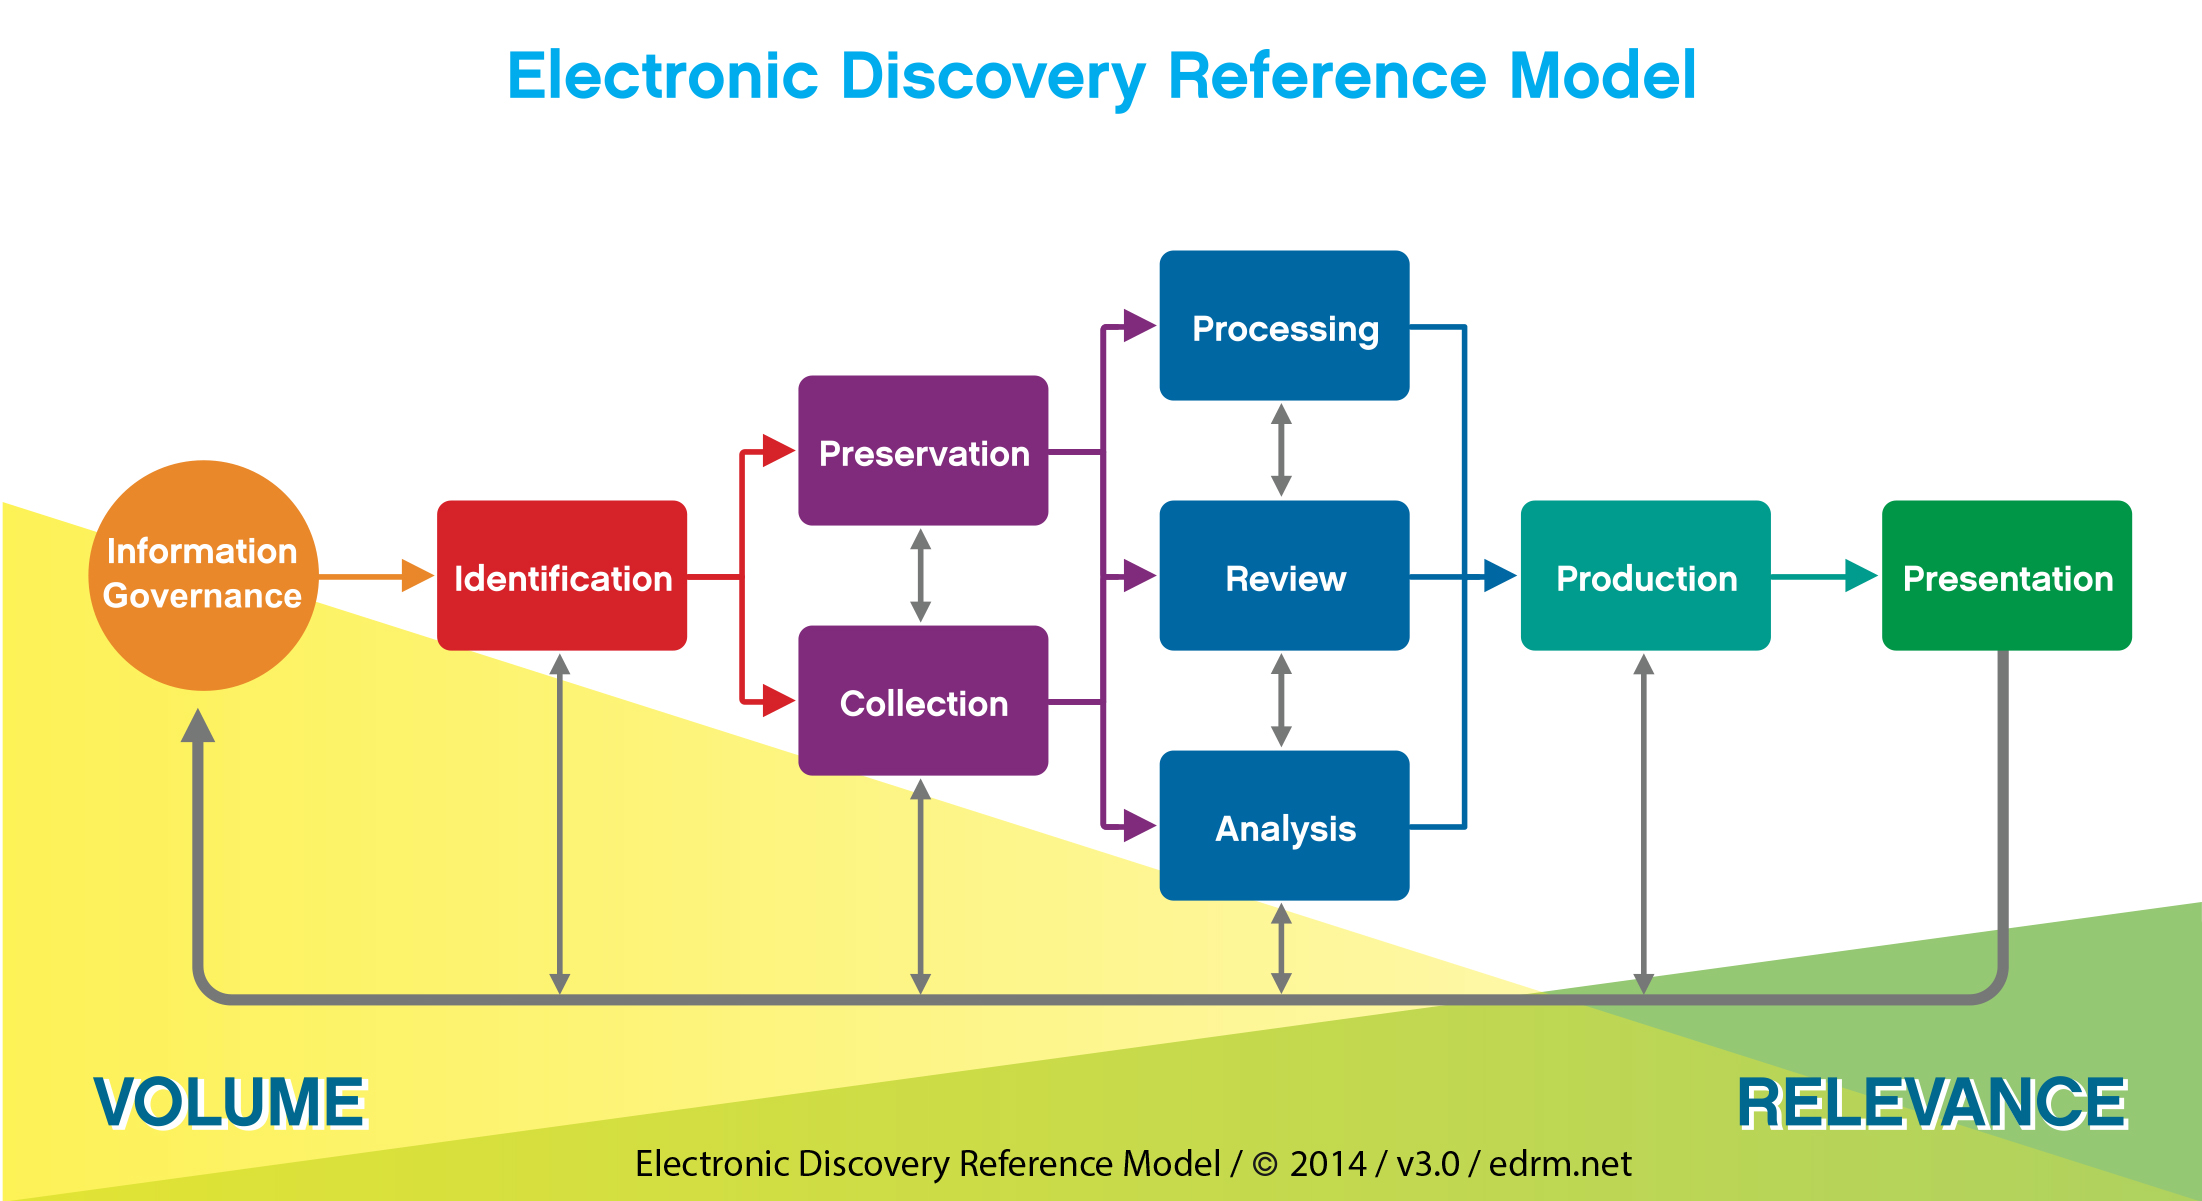 The Electronic Discovery Reference Model (EDRM)